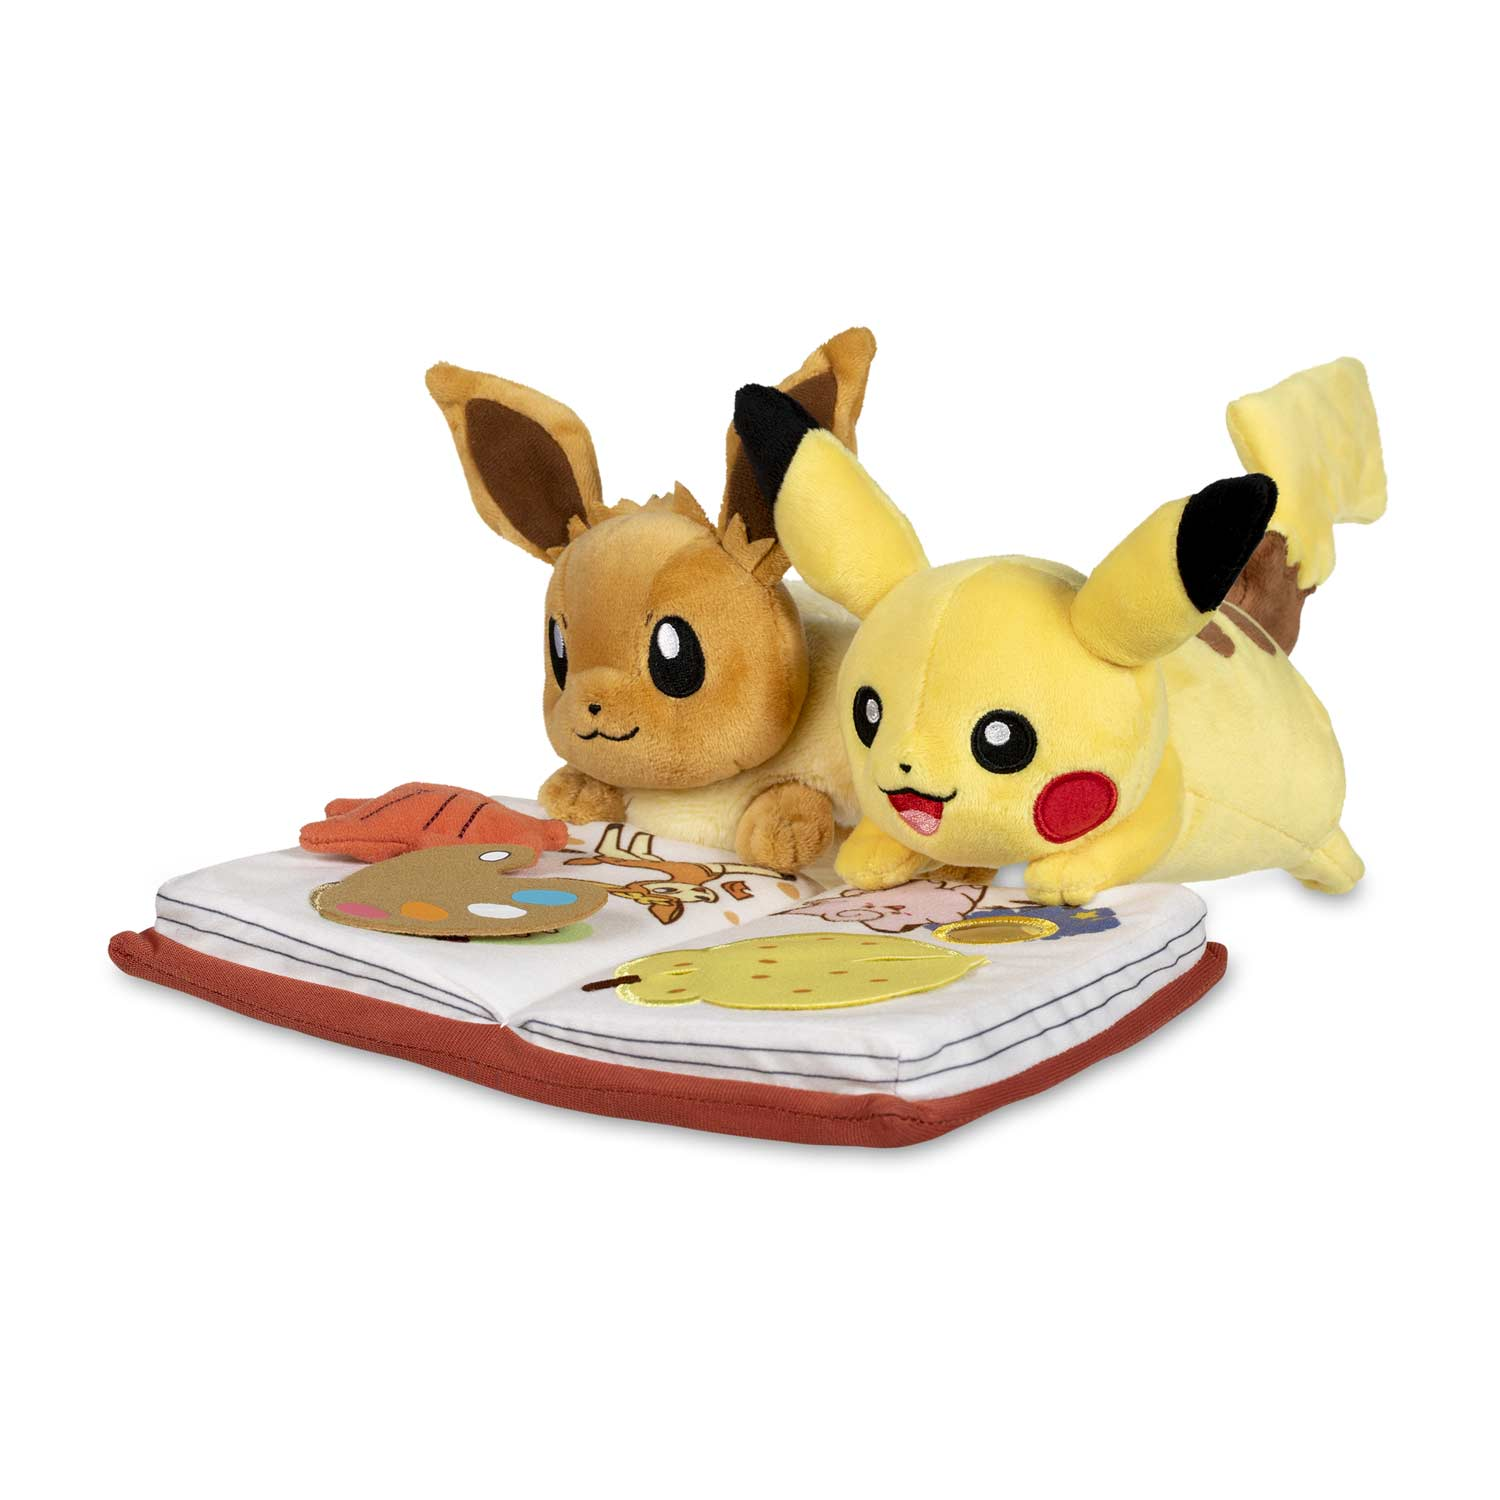 Seasonal Celebrations: Pikachu & Eevee Discovery Days Plush - 12 ...